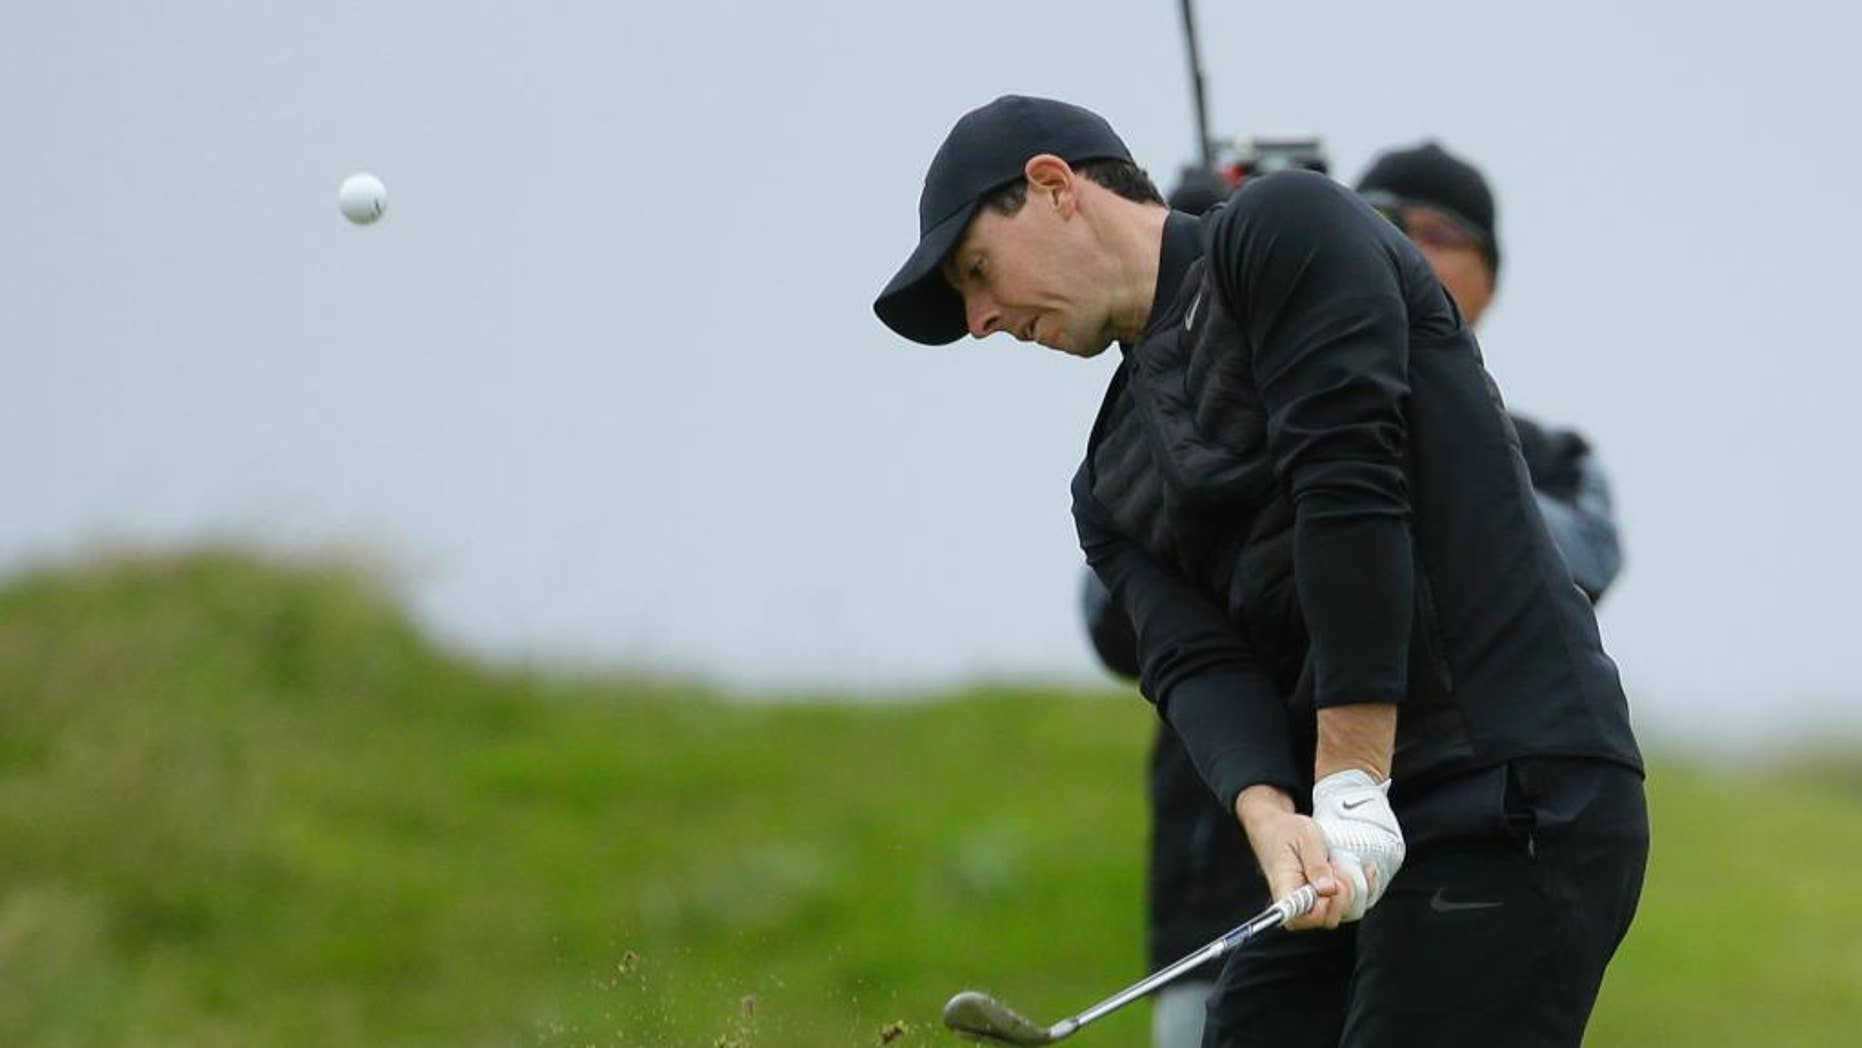 Rory McIlroy of Northern Ireland hits a shot from the 3rd fairway during the third round of the British Open Golf Championship at the Royal Troon Golf Club in Troon, Scotland, Saturday, July 16, 2016. (AP Photo/Matt Dunham)